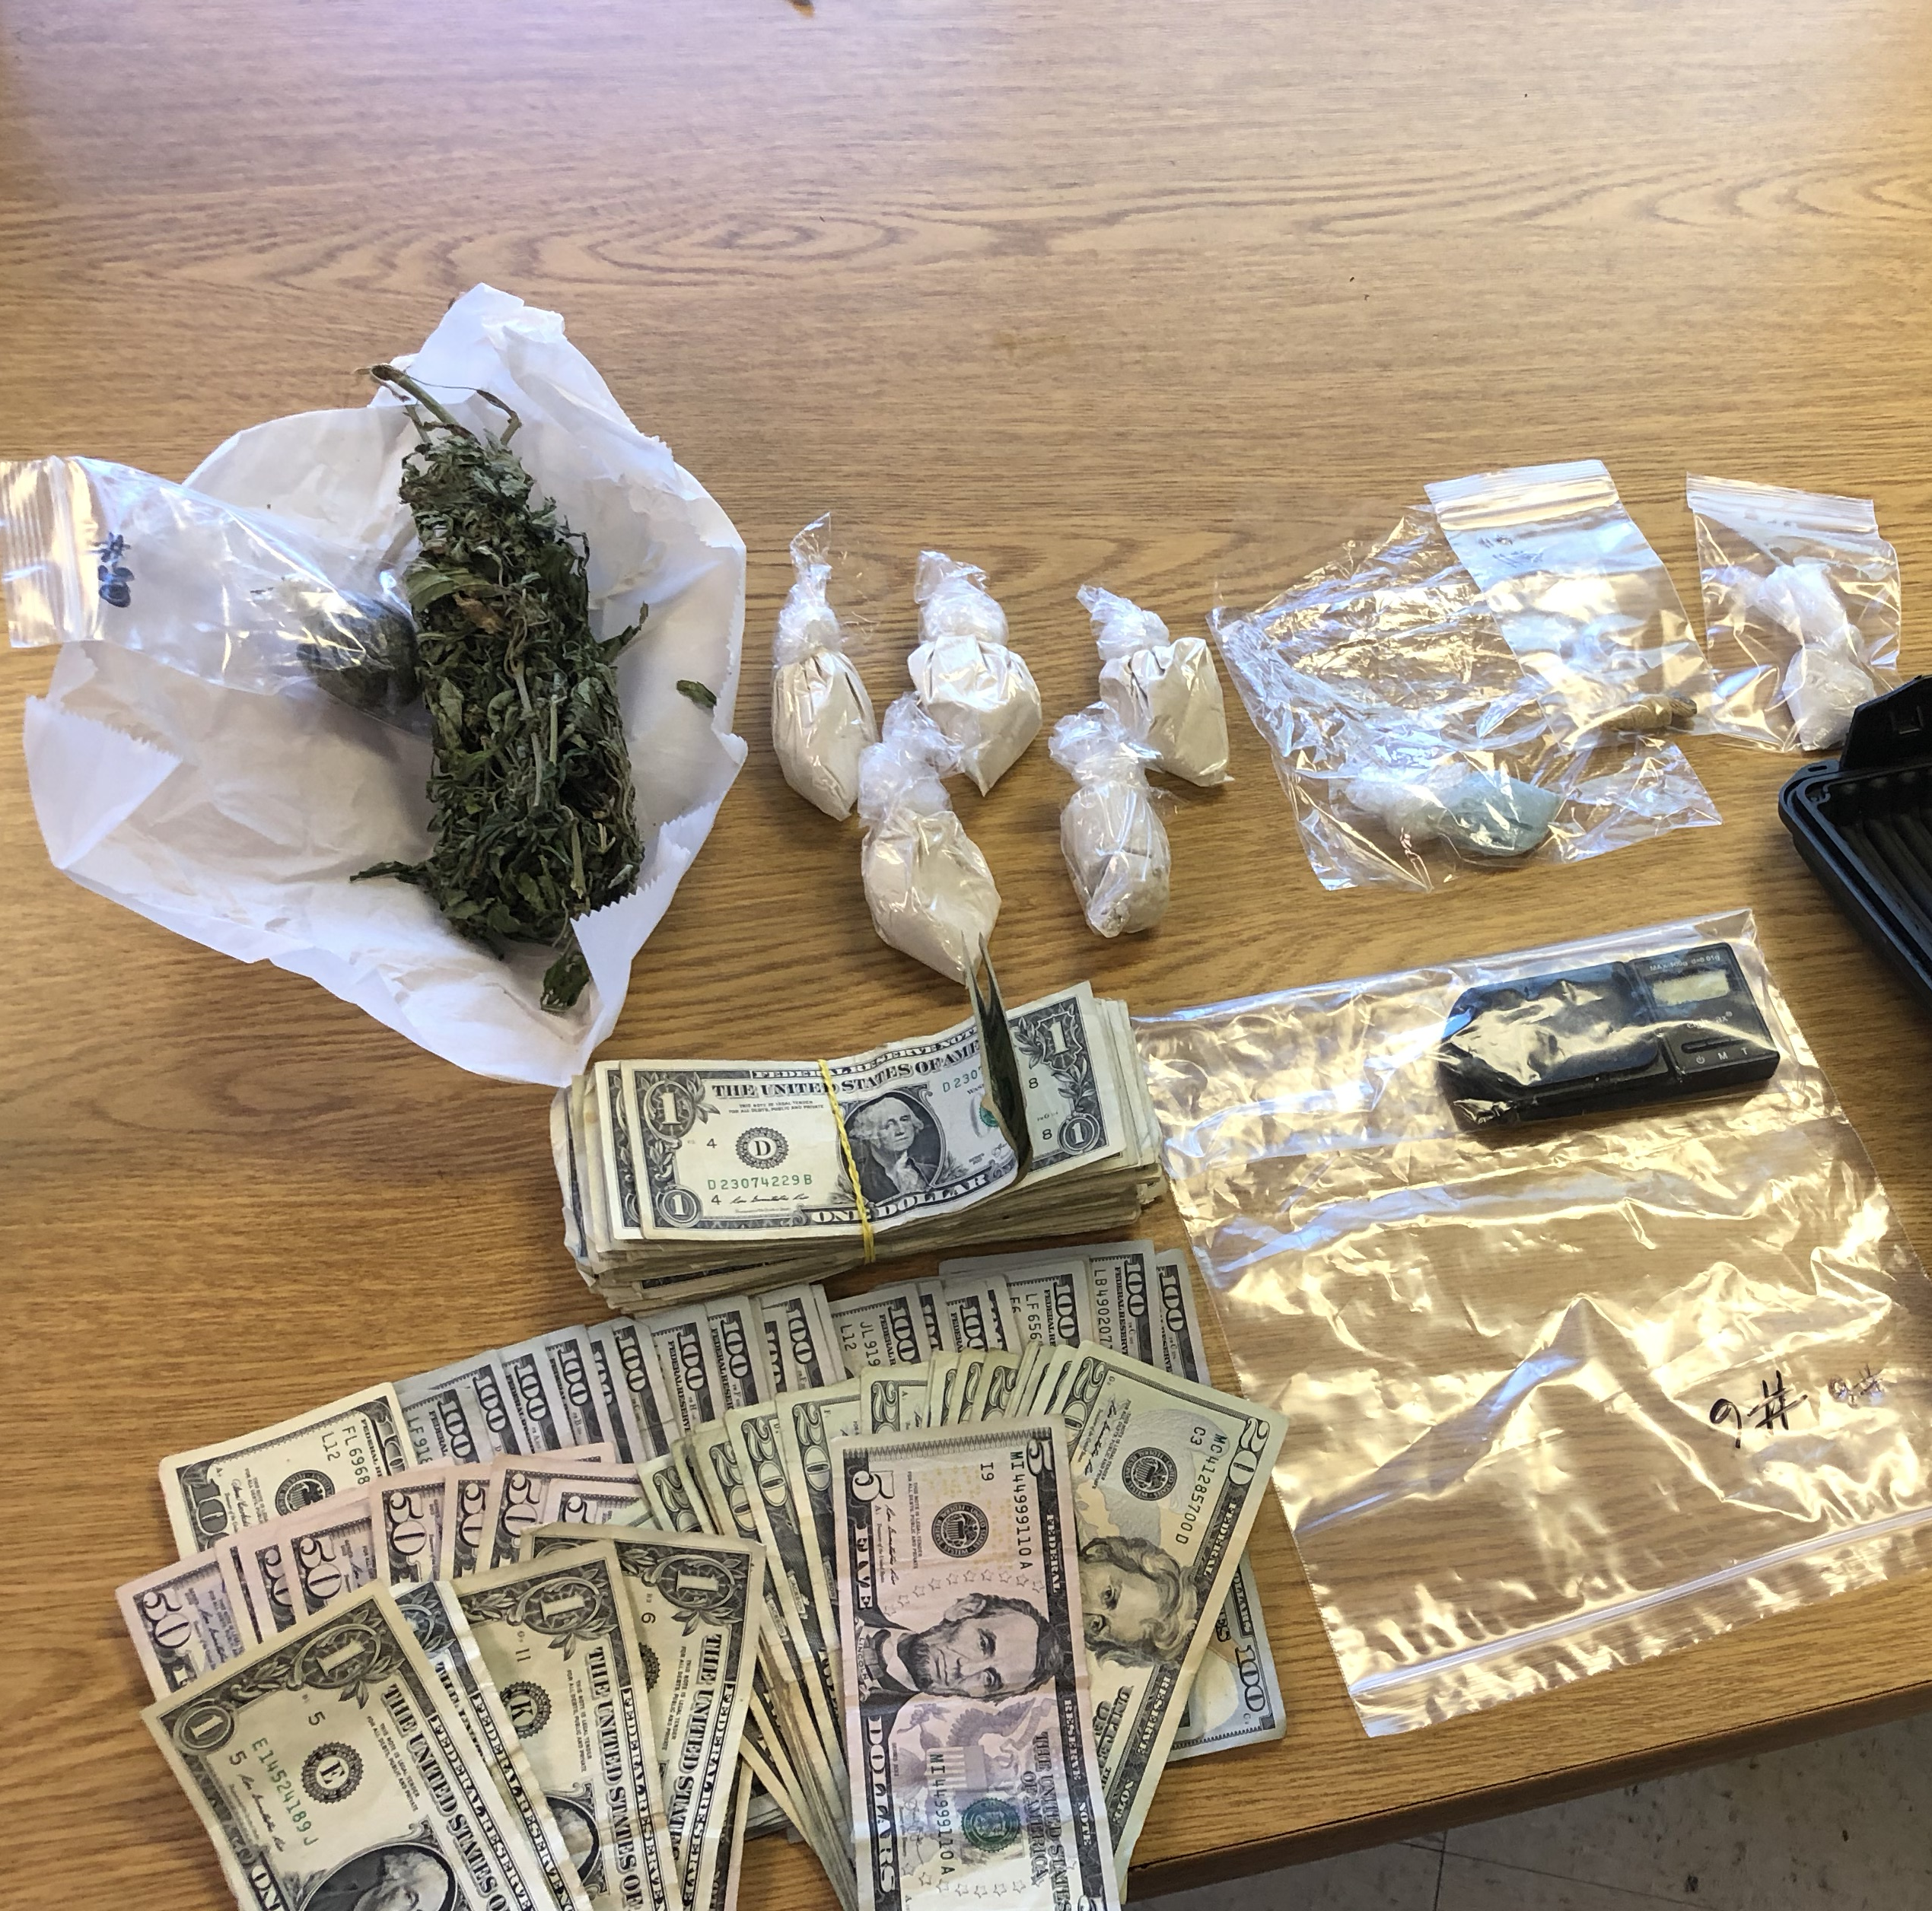 Chillicothe police find 6 oz. heroin, 1 ounce suspected carfentanil in drug raid